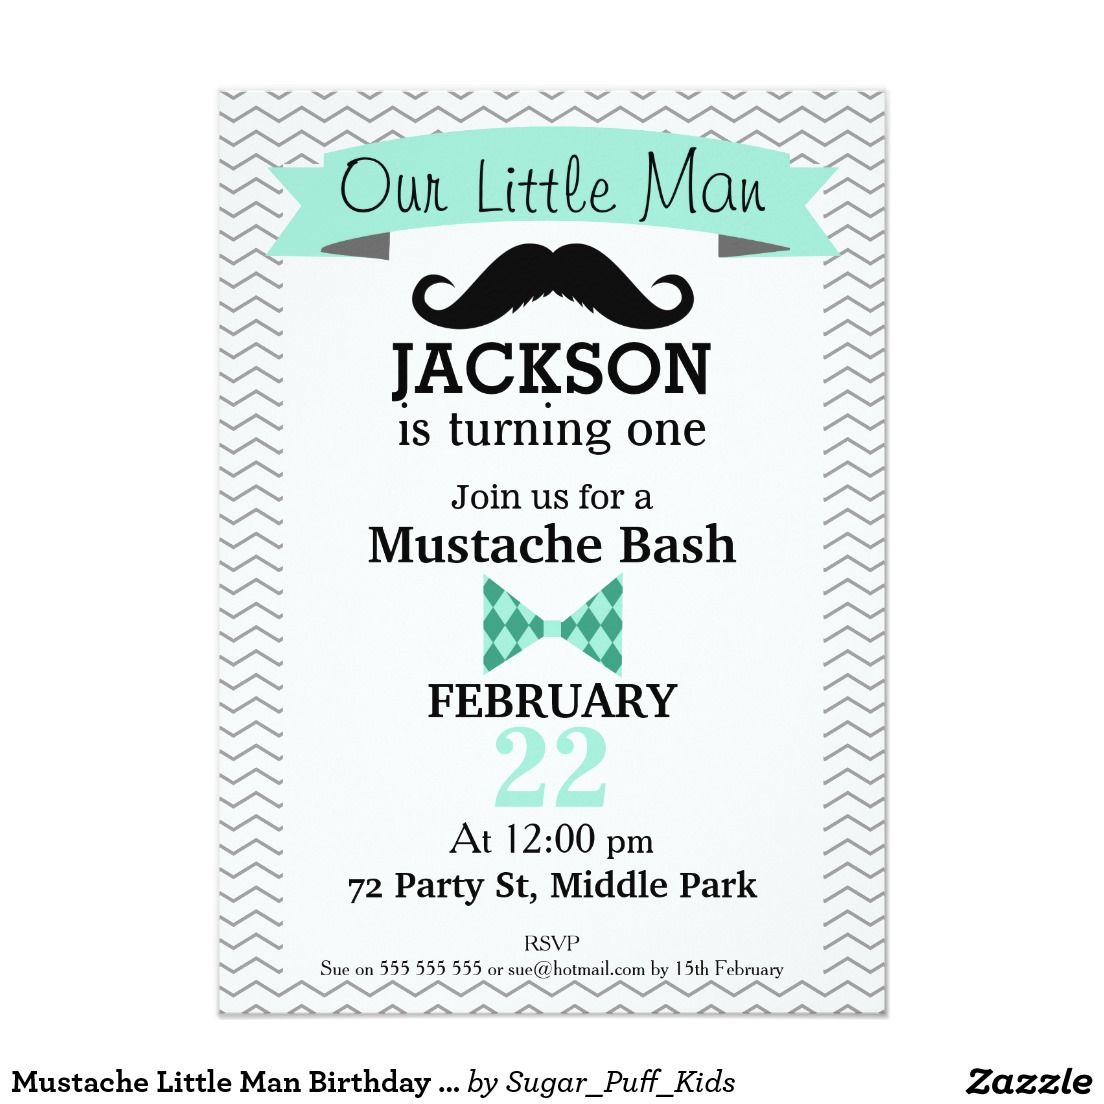 Mustache Little Man Birthday Party Invitation | Kids Corner ...